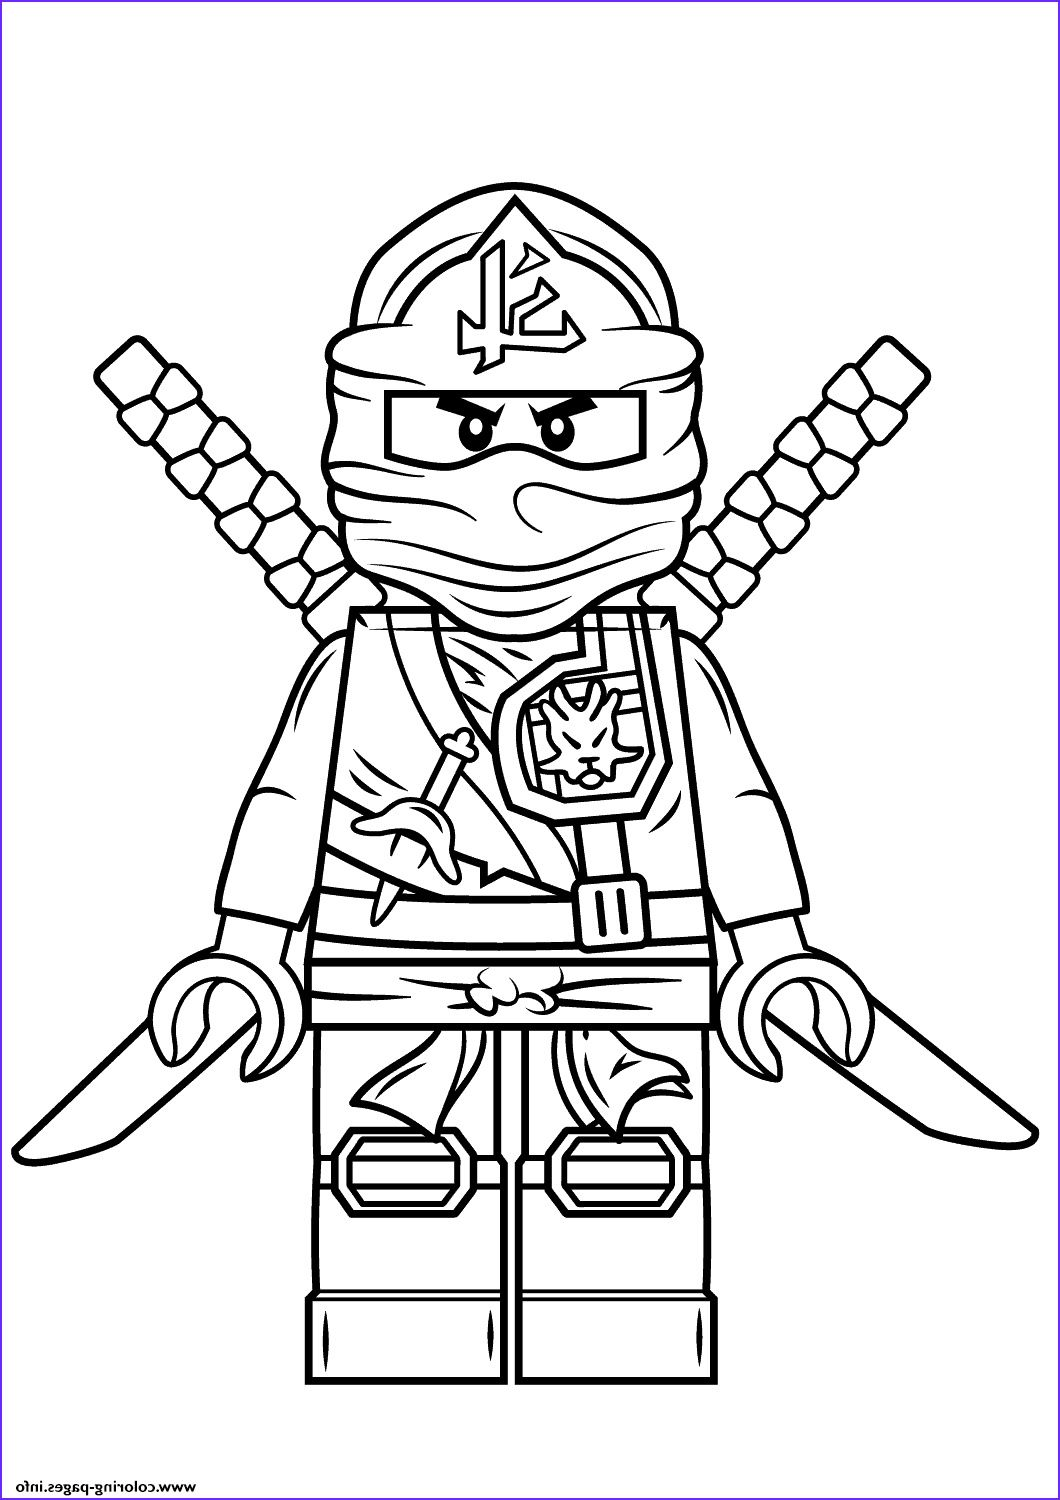 45 Cool Photos Of Ninjago Coloring Book In 2020 Ninjago Coloring